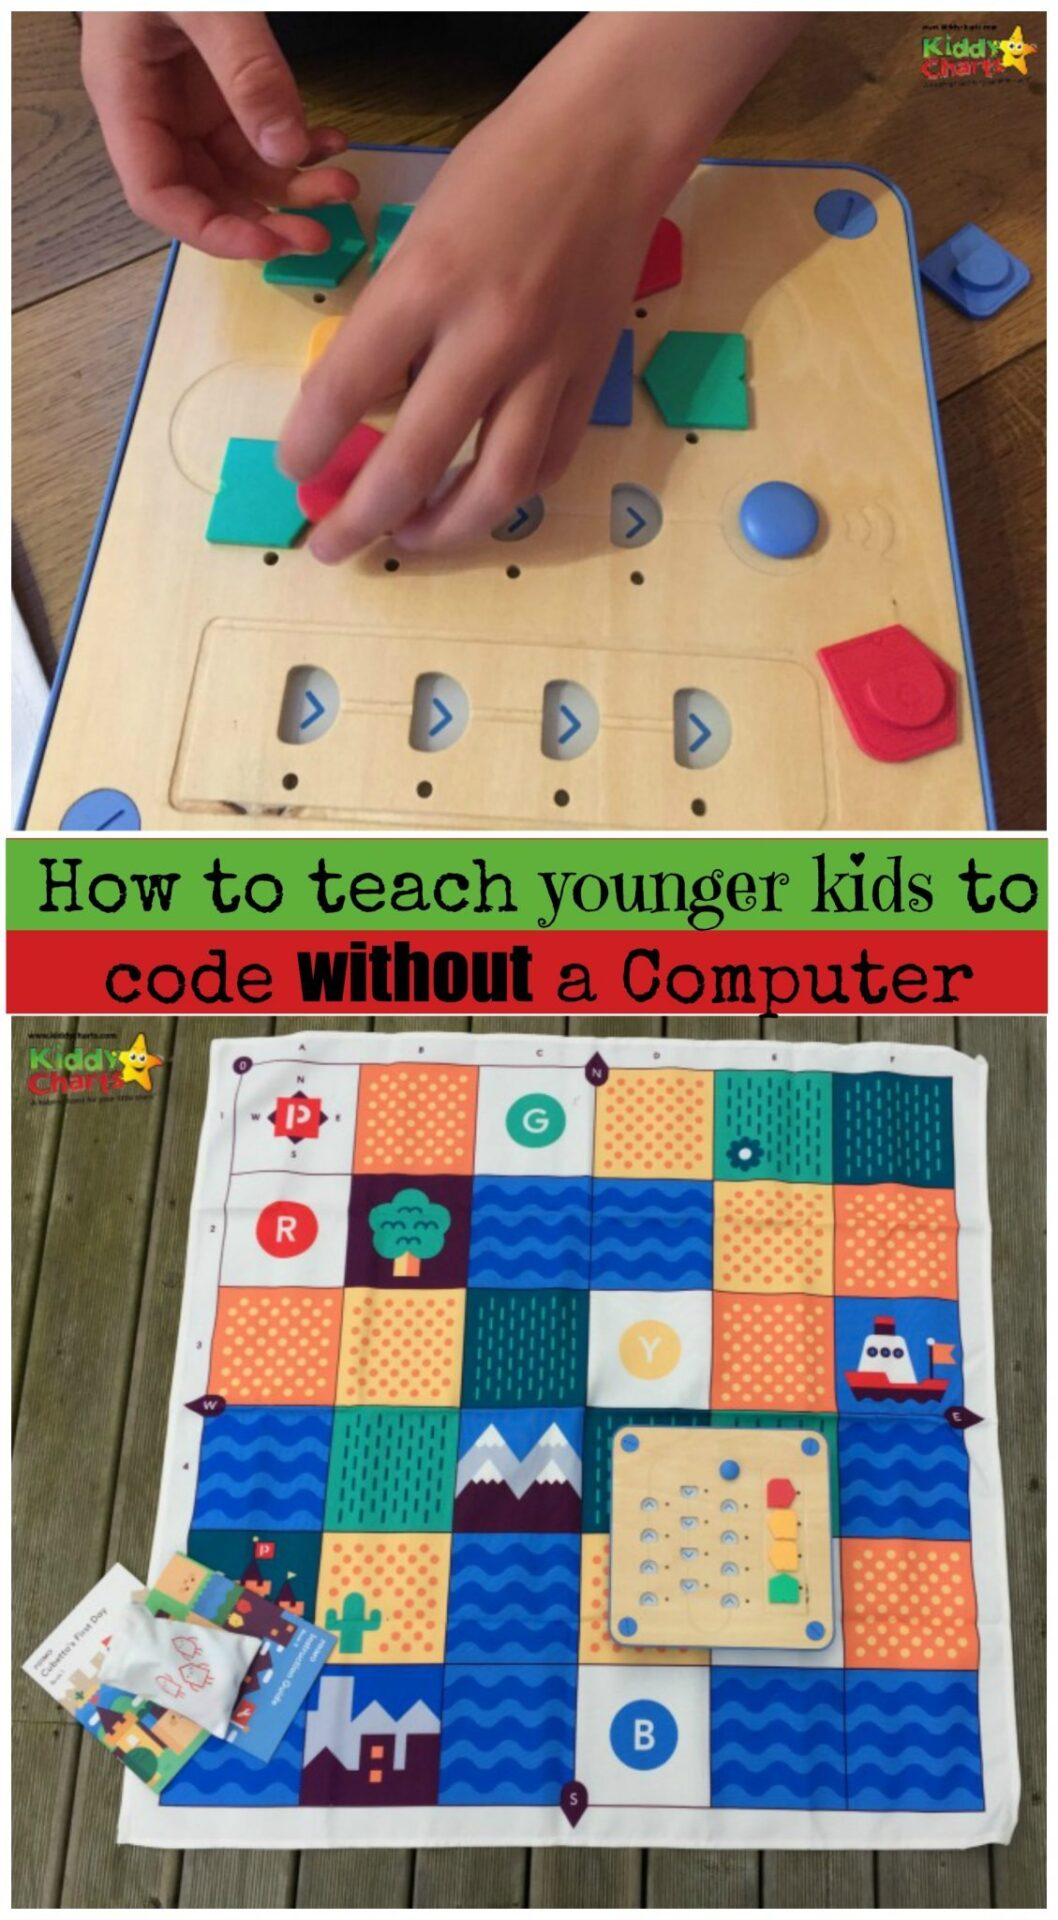 How do you teach coding to kids without a computer? THIS is how.